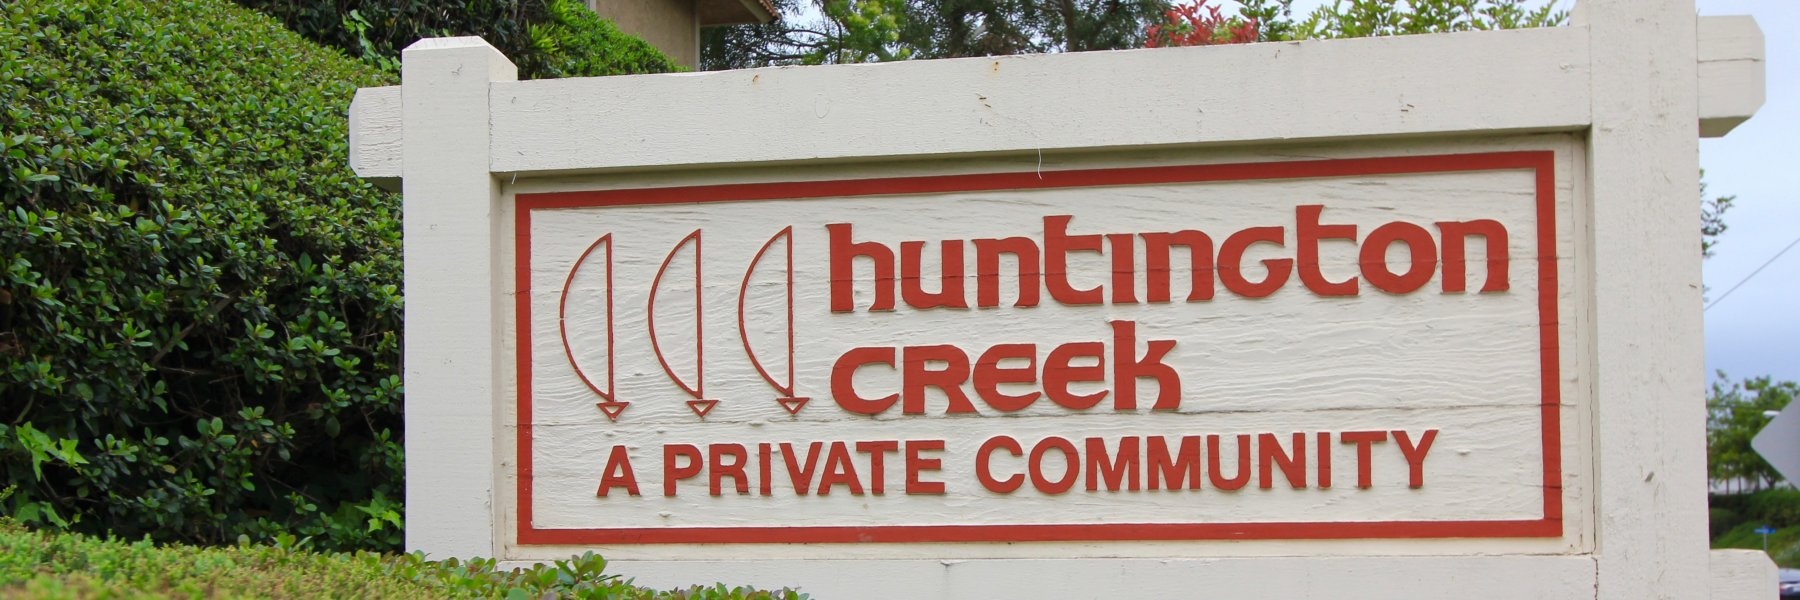 Huntington Creek condos in Huntington Beach California